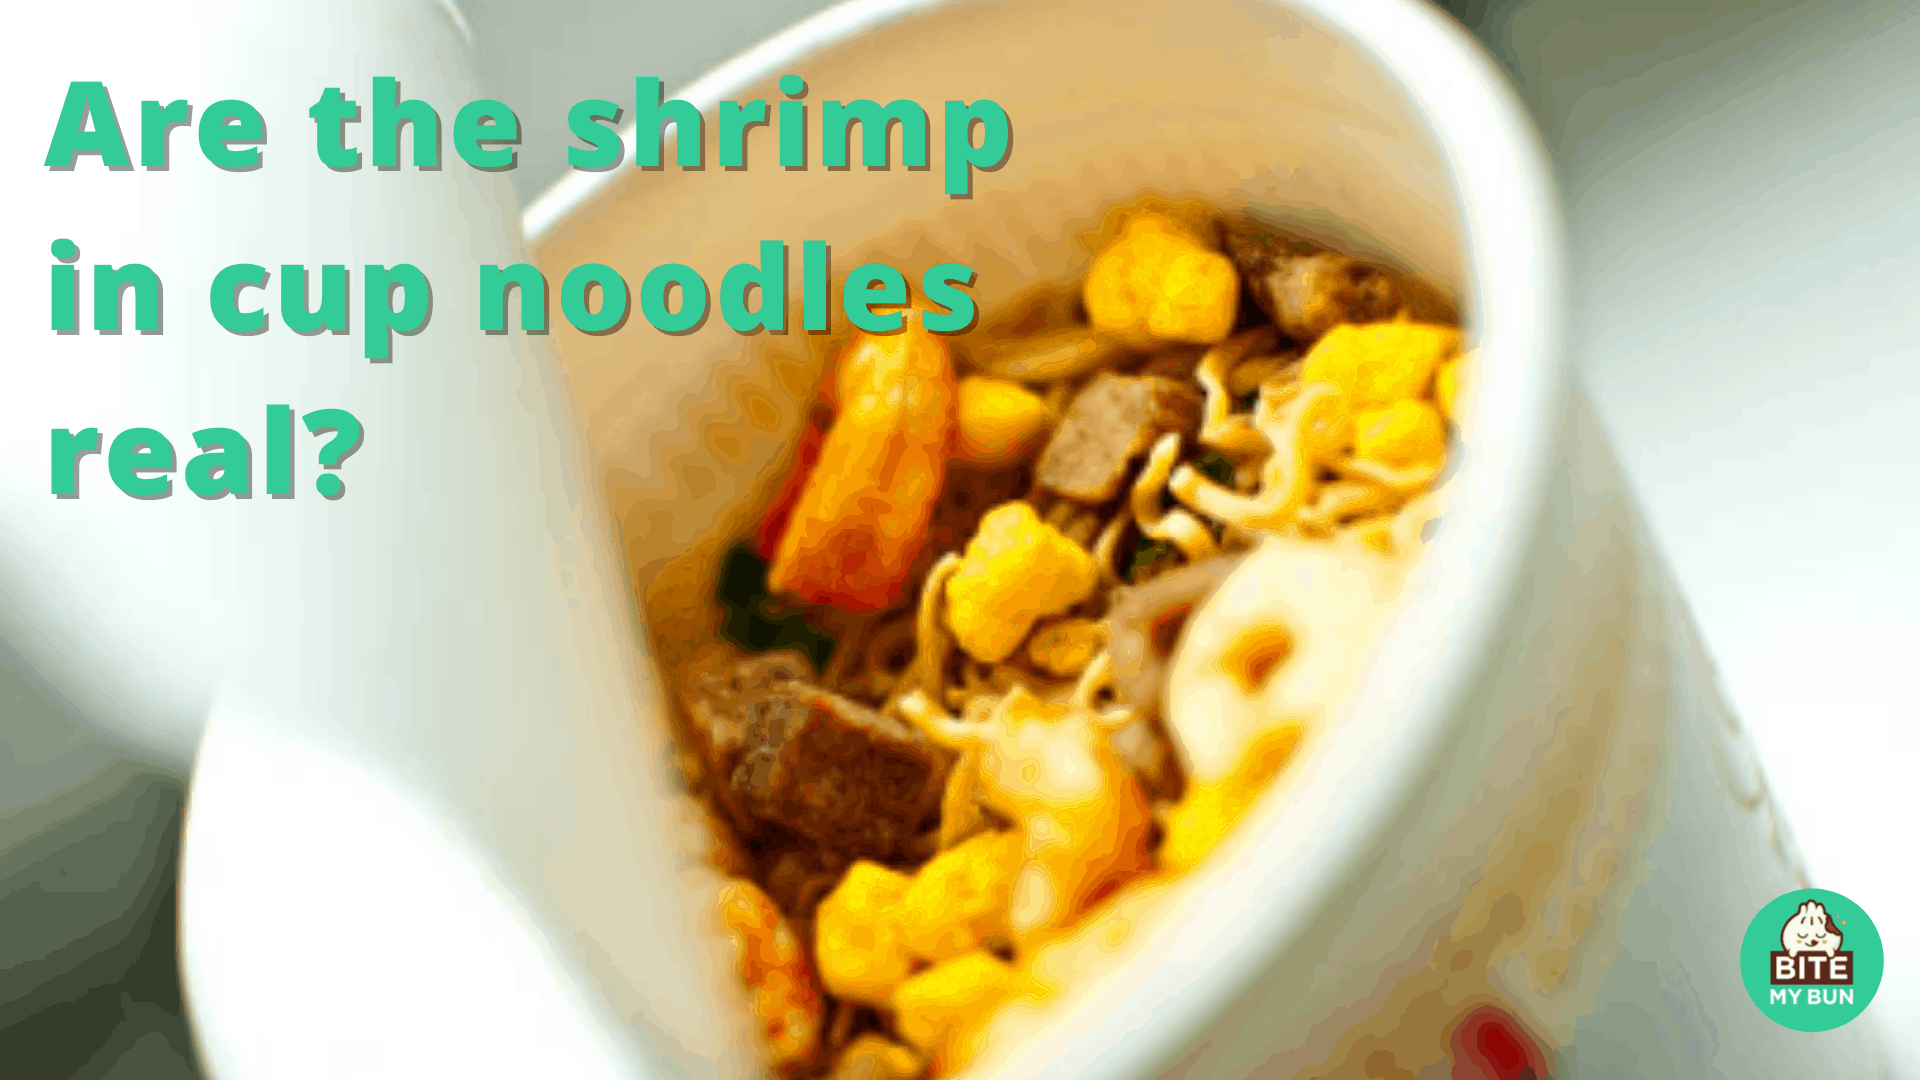 Are the shrimp in cup noodles real? The surprising truth